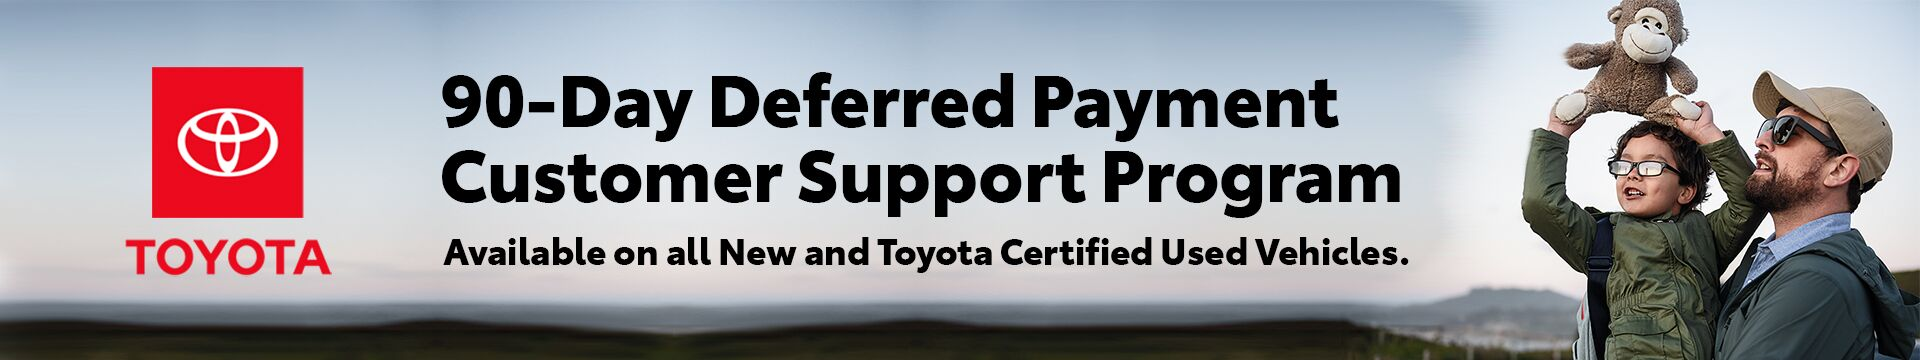 90-Day Deferred Payment